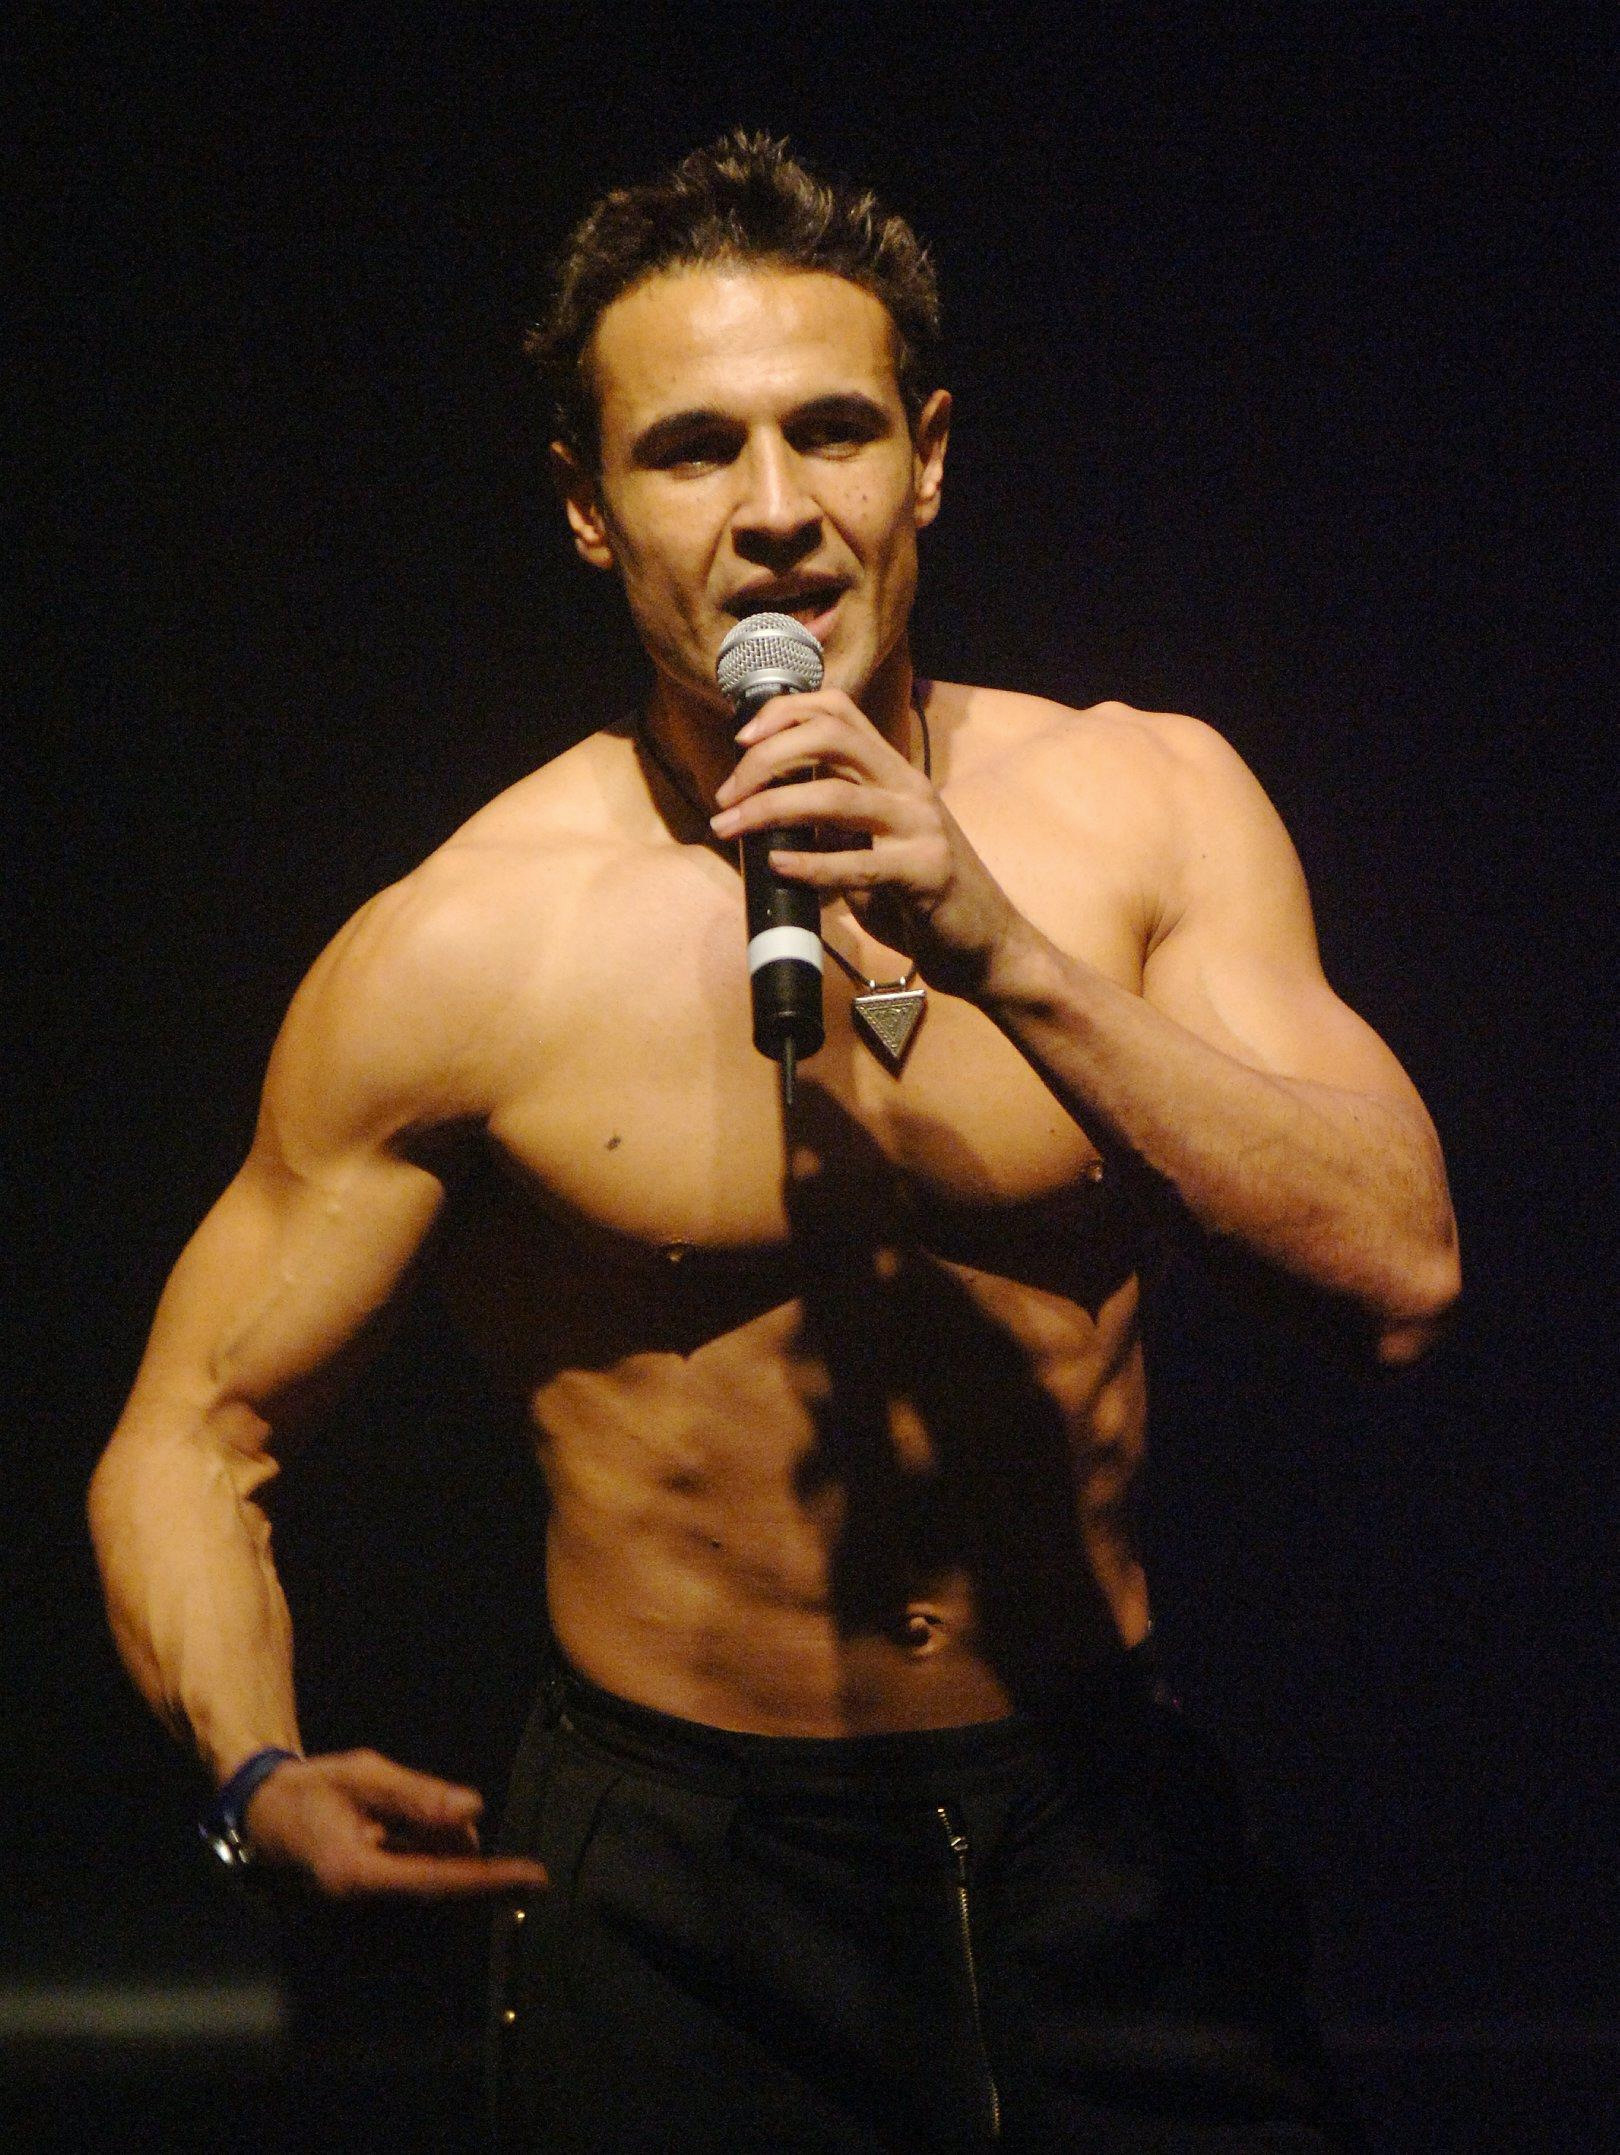 Chico performing in 2005